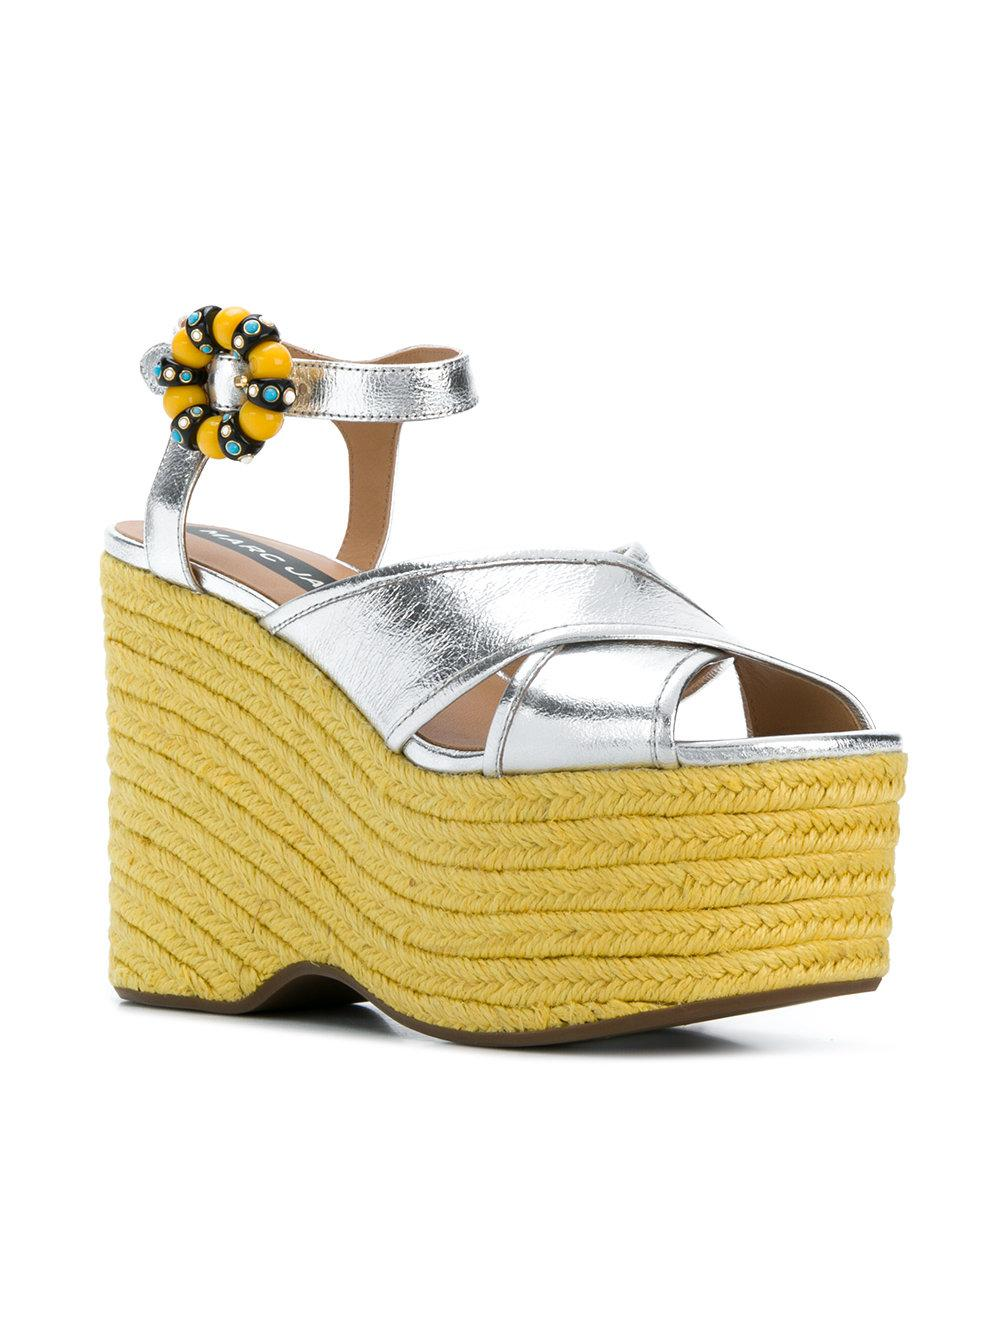 6f707232a02 Lyst - Marc Jacobs Rowan Wedge Sandals in Yellow